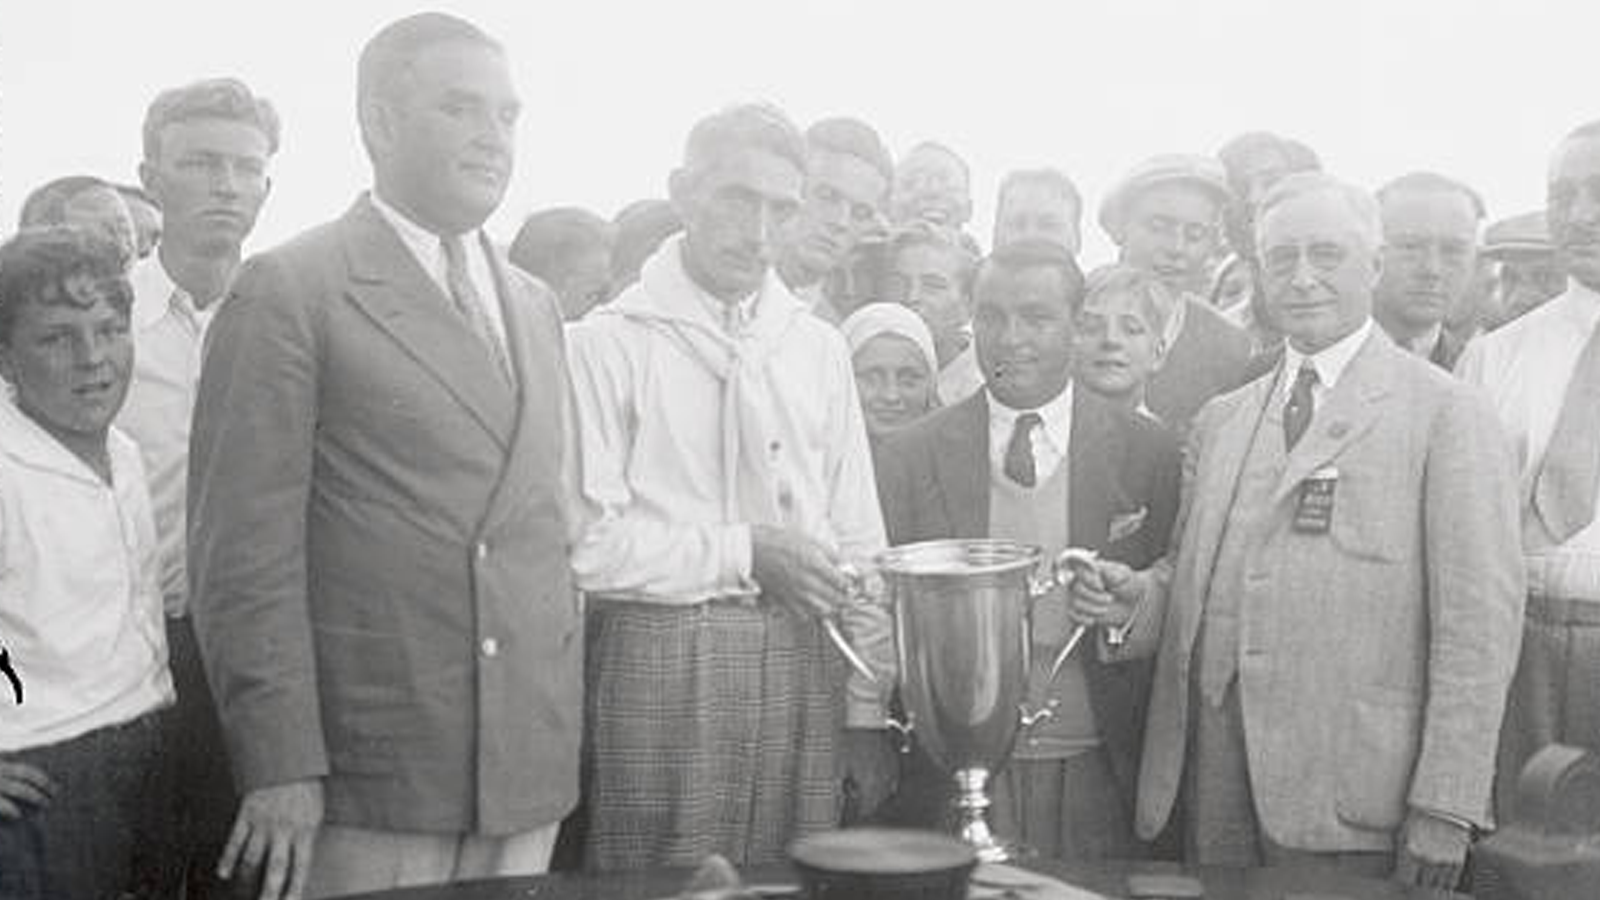 Left to right: 1930 Champion Tommy Armour, runner-up Gene Sarazen and PGA Business Manager A.W. Gates with the PGA Championship trophy.